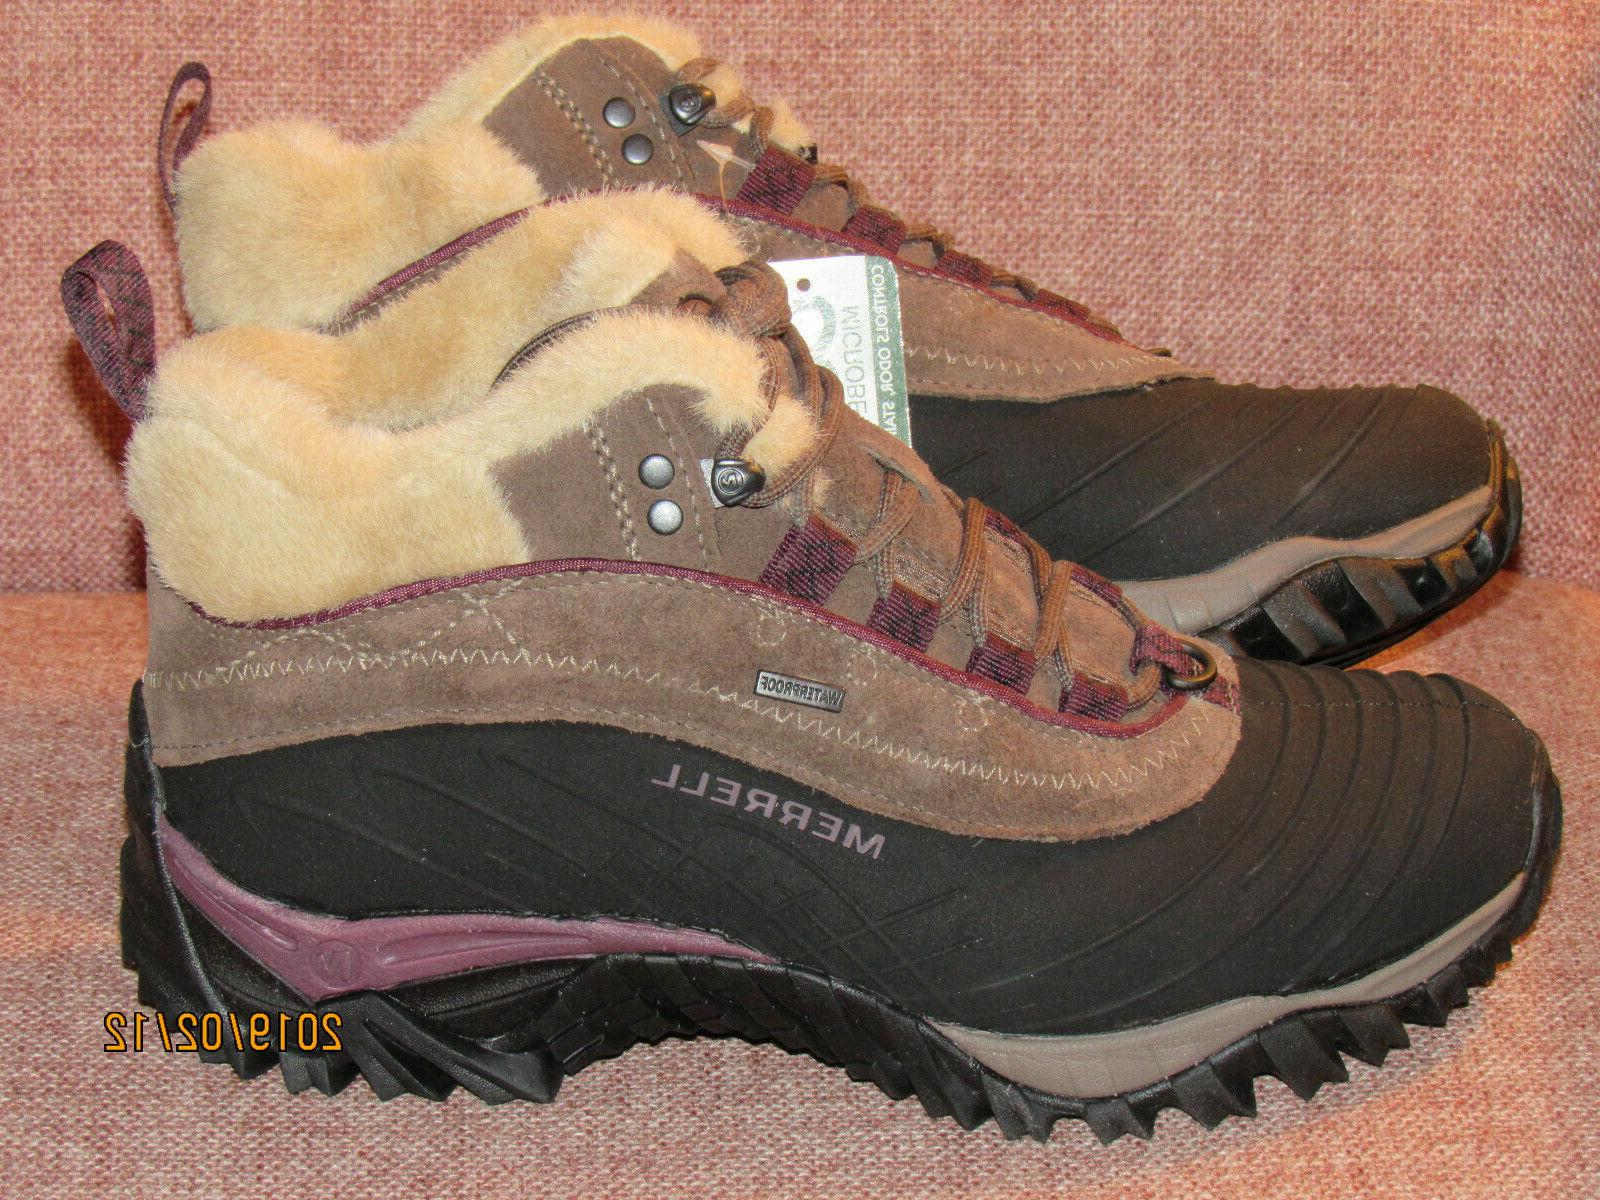 Merrell Waterproof Winter Boots  - Brown/Purple - Brand New